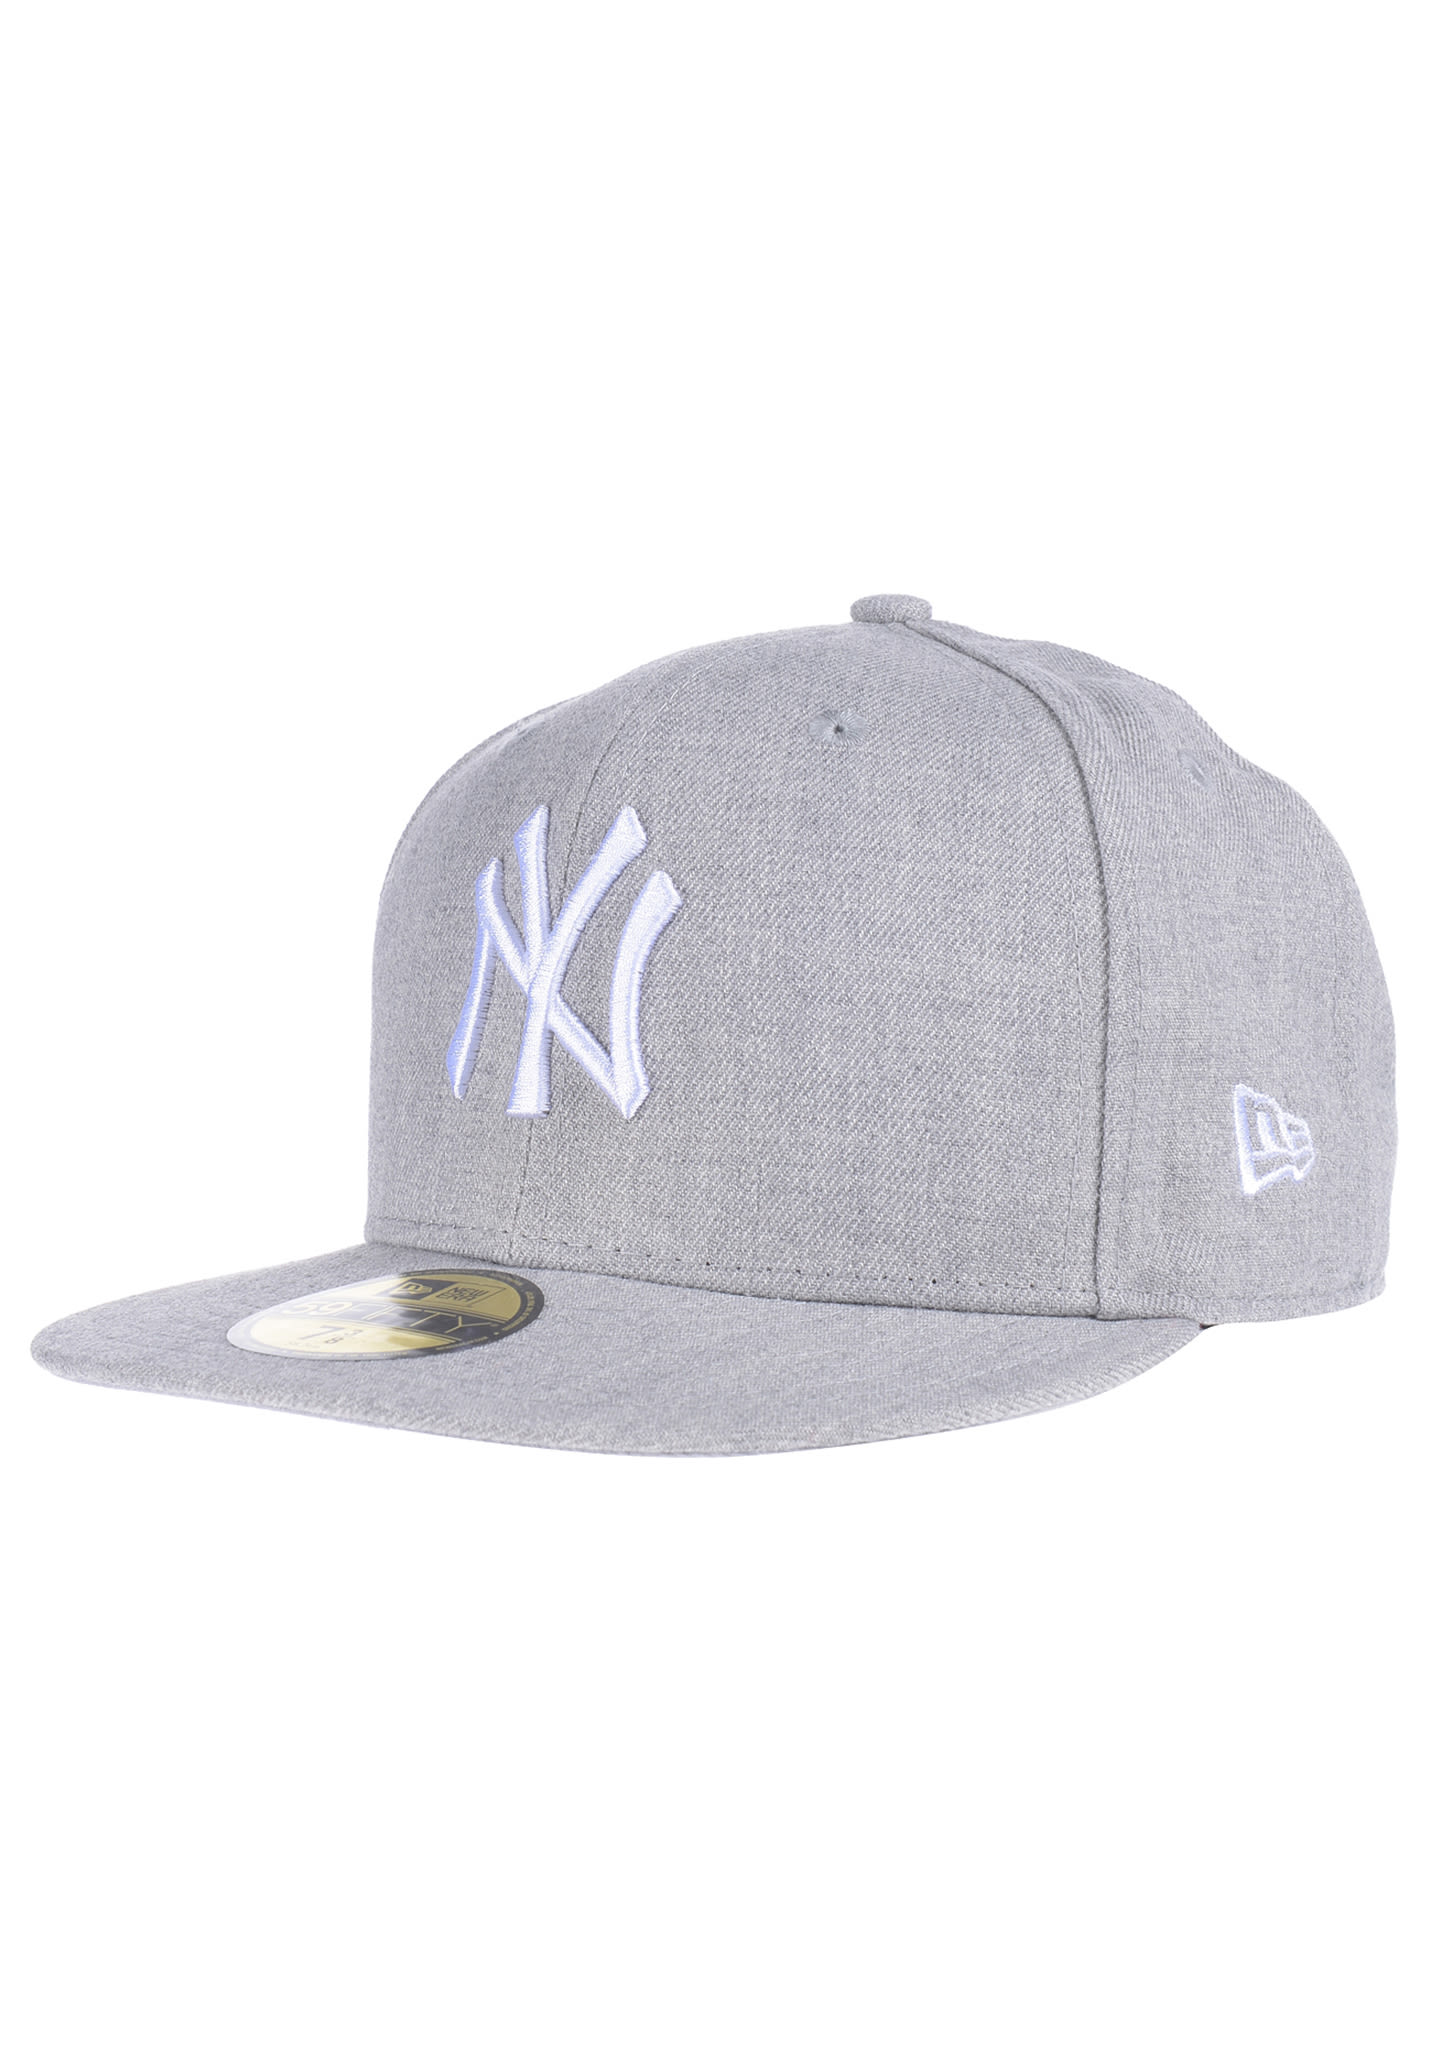 55ea821df NEW Era 59Fifty New York Yankees - Fitted Cap - Grey - Planet Sports